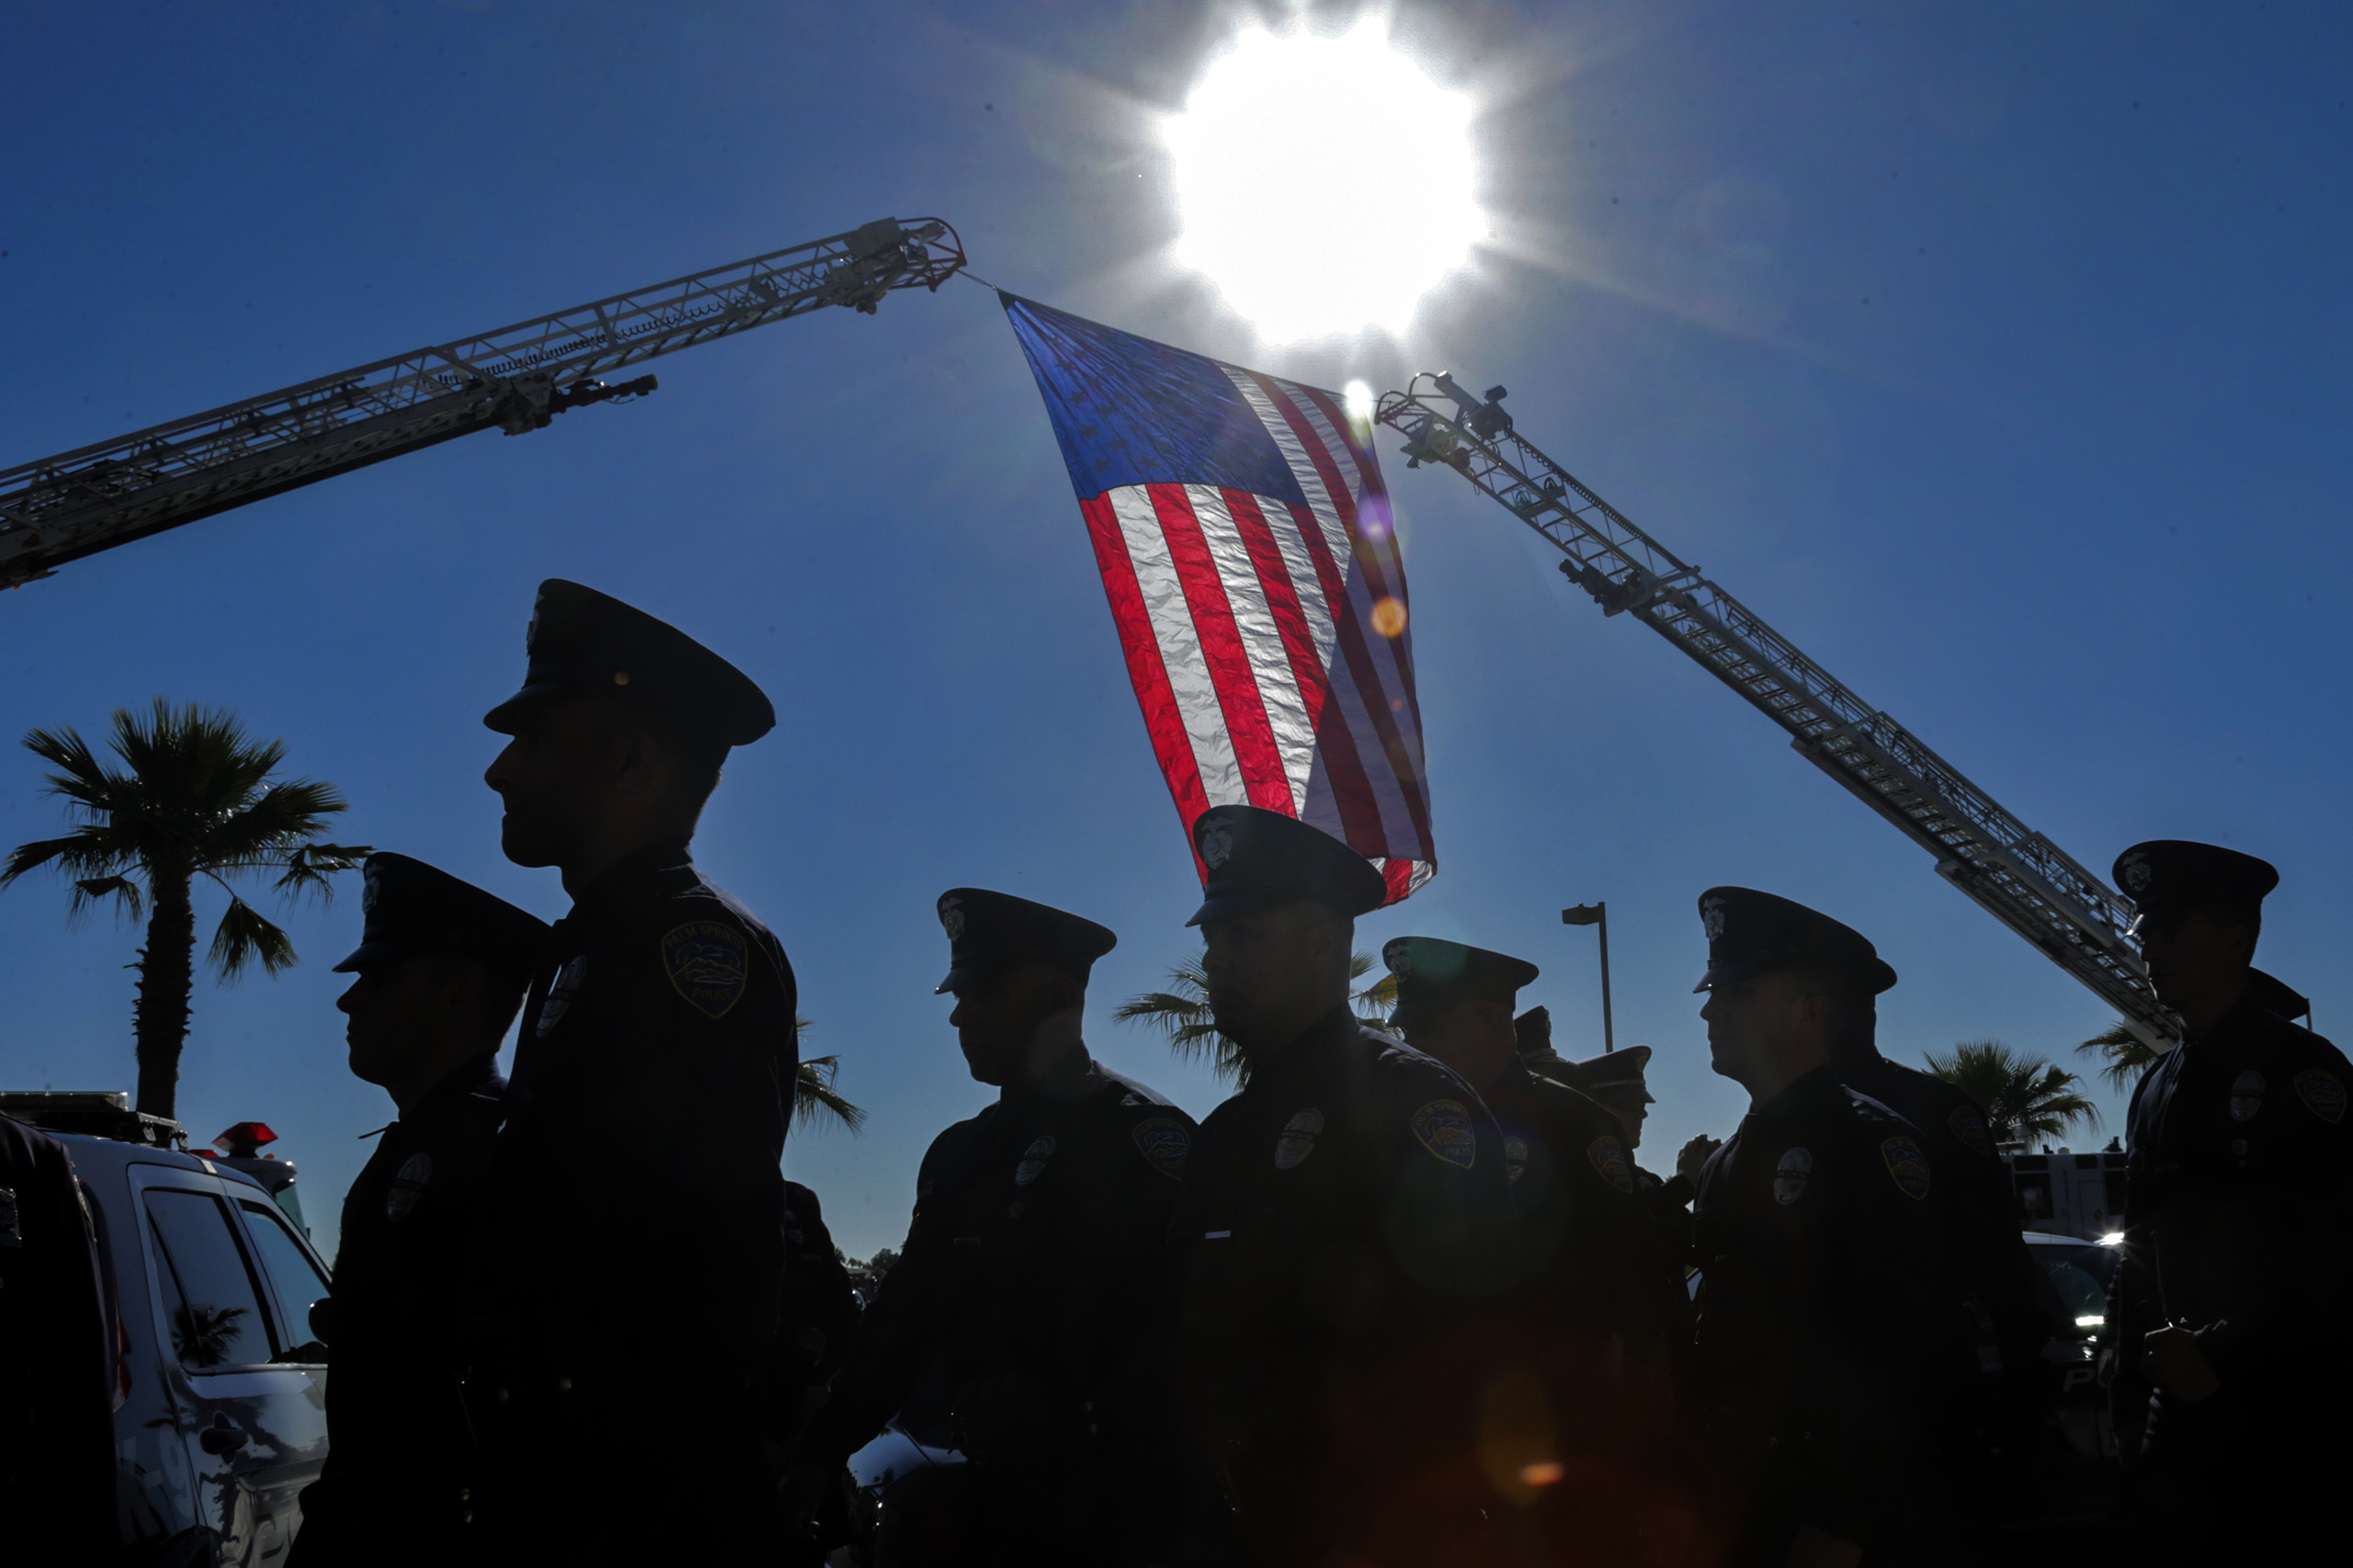 Palm Springs police officers march for memorial services for their colleague fallen Officers on Oct. 18, 2016 at Convention Center in Palm Springs.